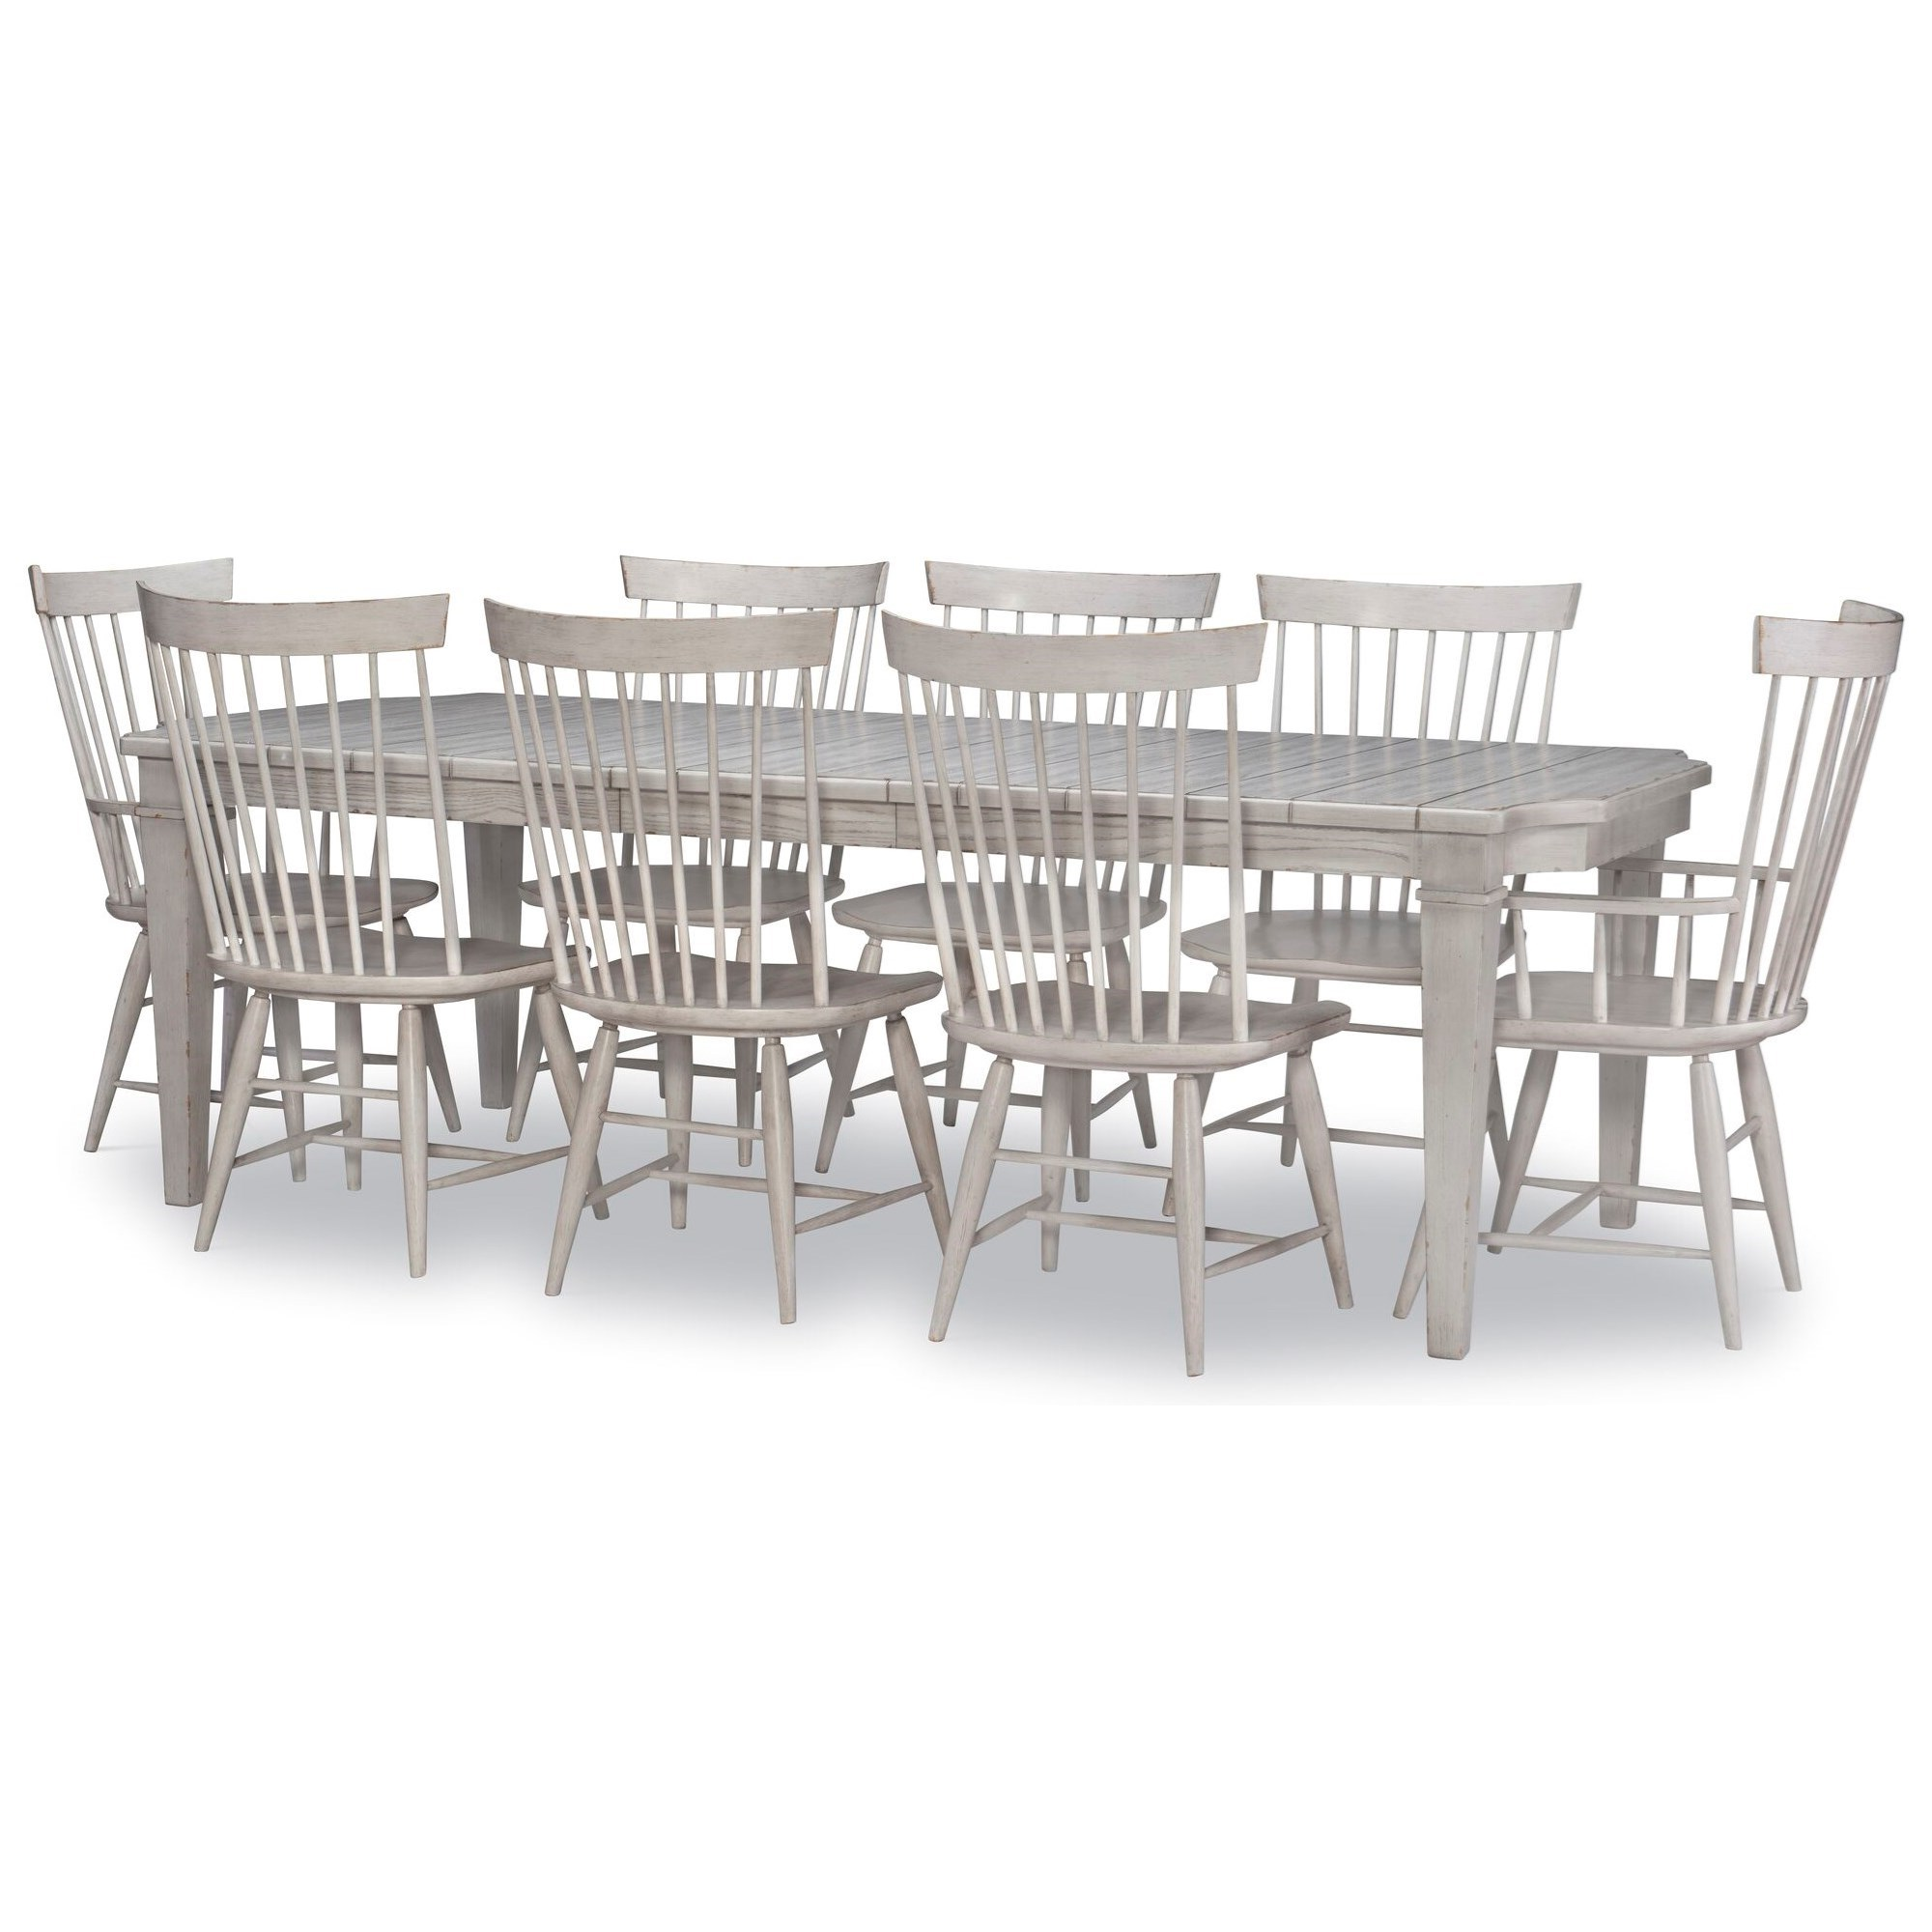 Belhaven 9-Piece Table and Chair Set by Legacy Classic at Stoney Creek Furniture